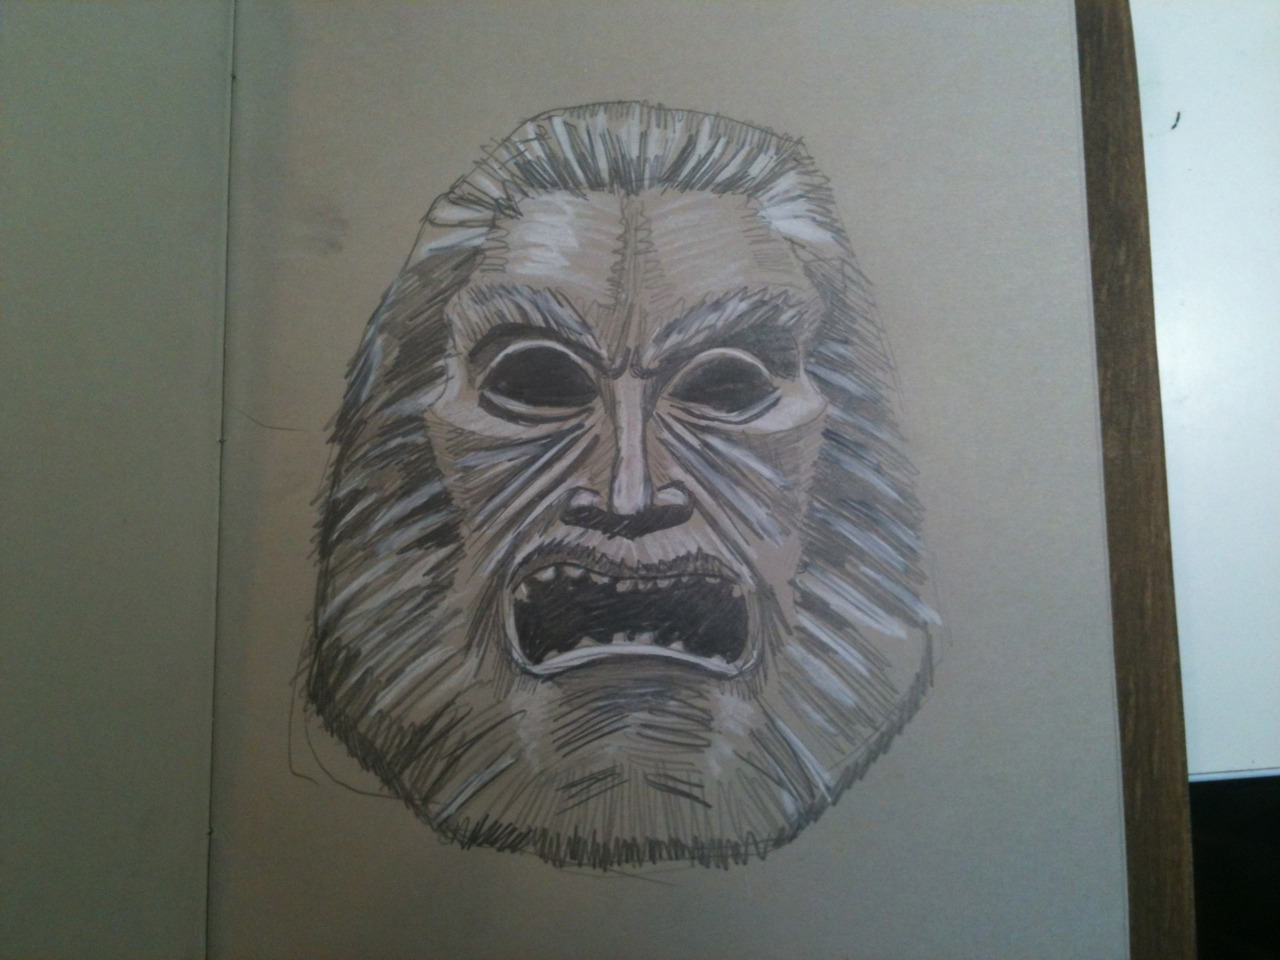 ZARDOZ  ZARDOZ SPEAKS  TO YOU  ZARDOZ